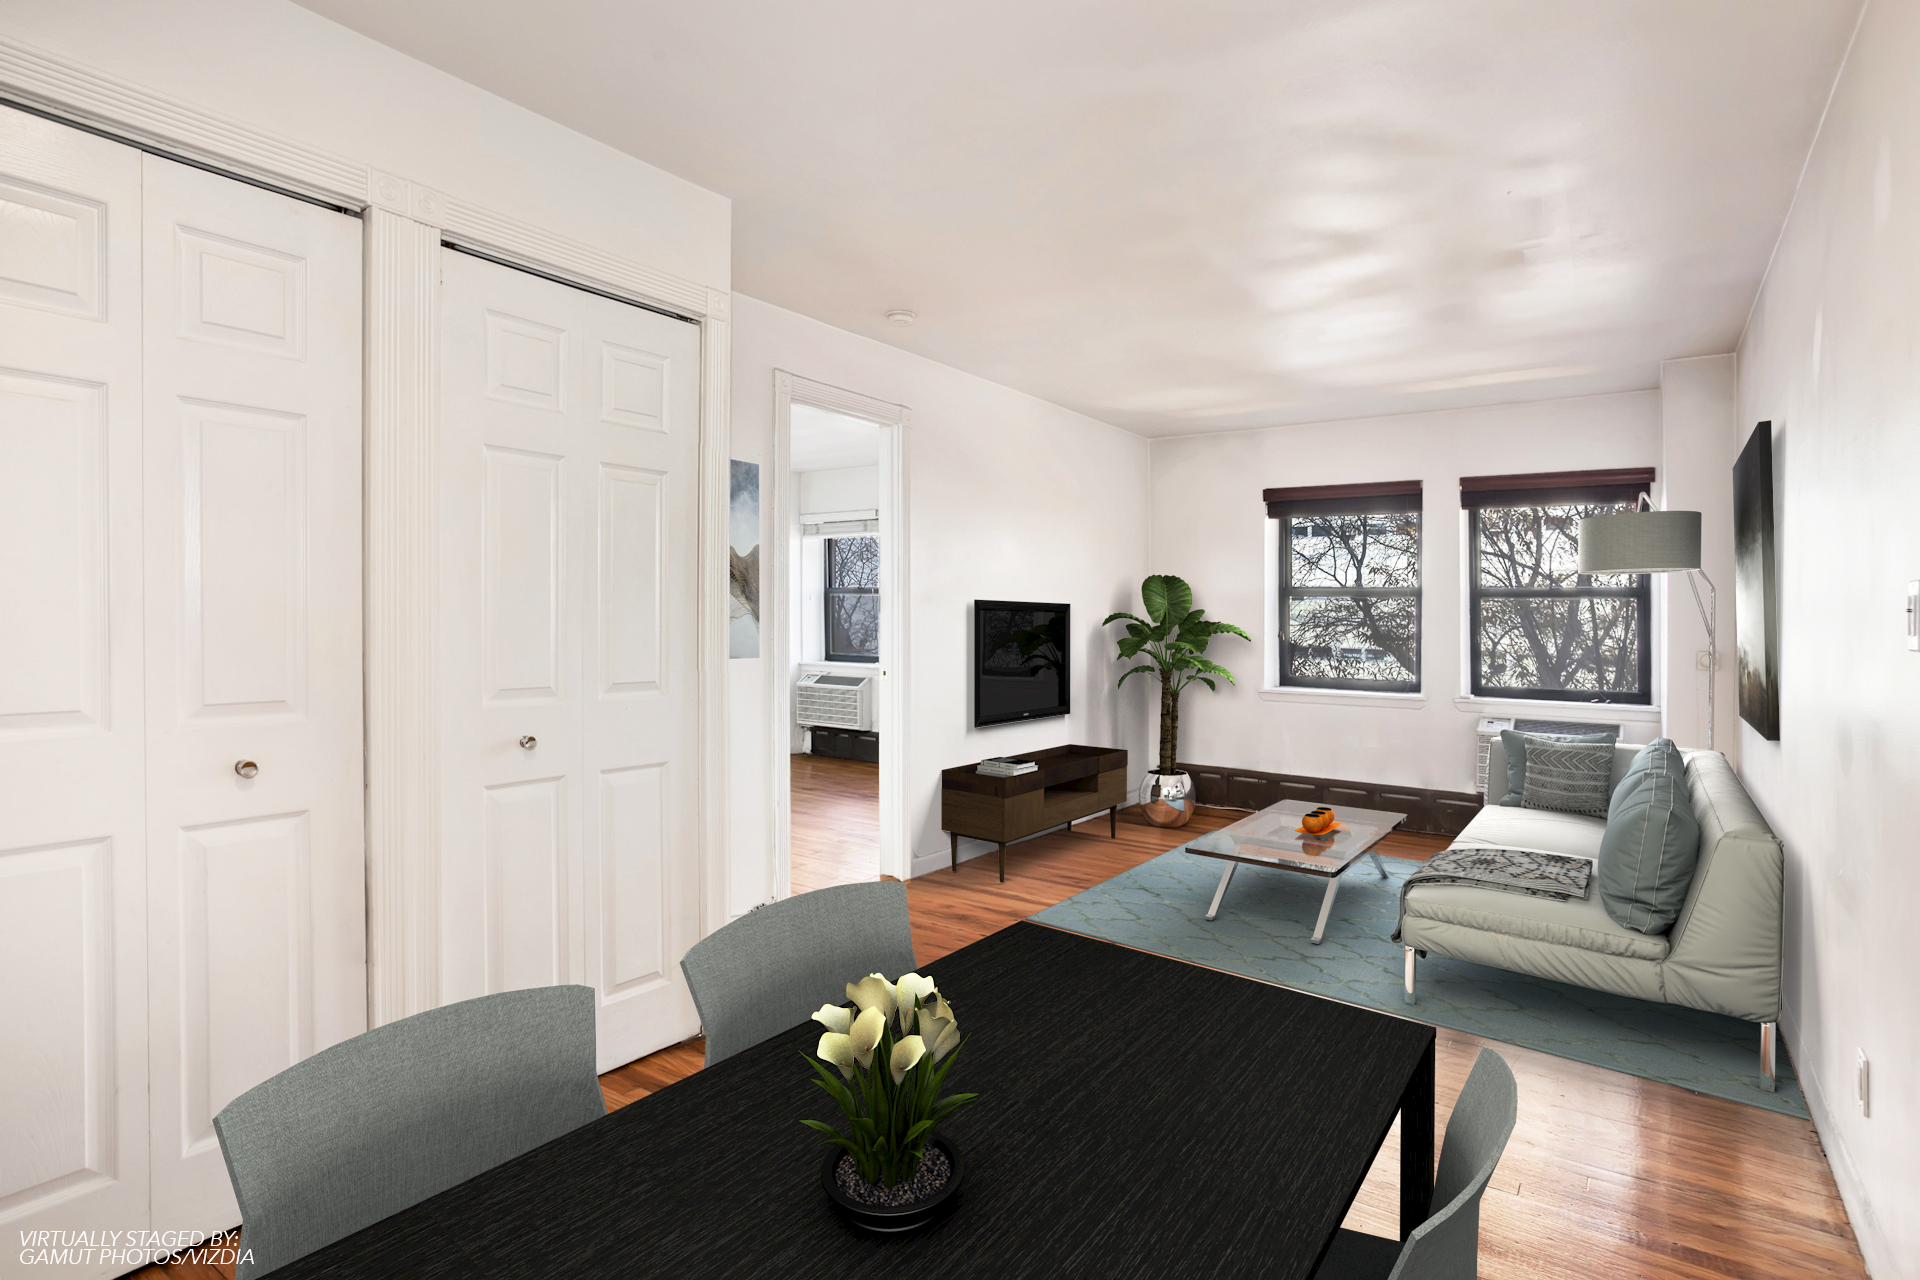 424 West 49th Street, #3A - $698,000